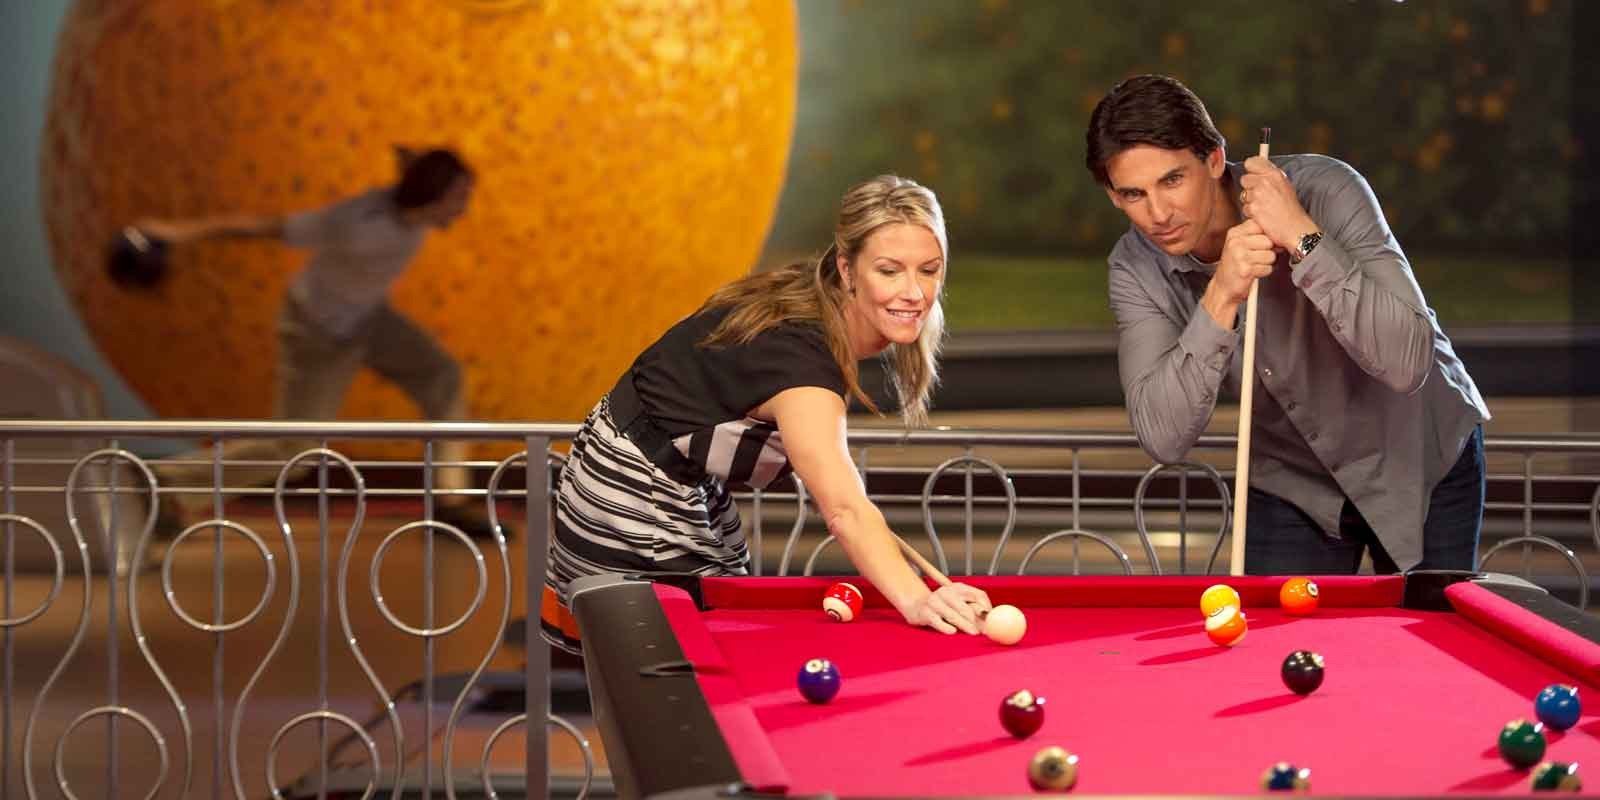 A woman and man play a game of pool on a red pool table, while a person in the background bowls.